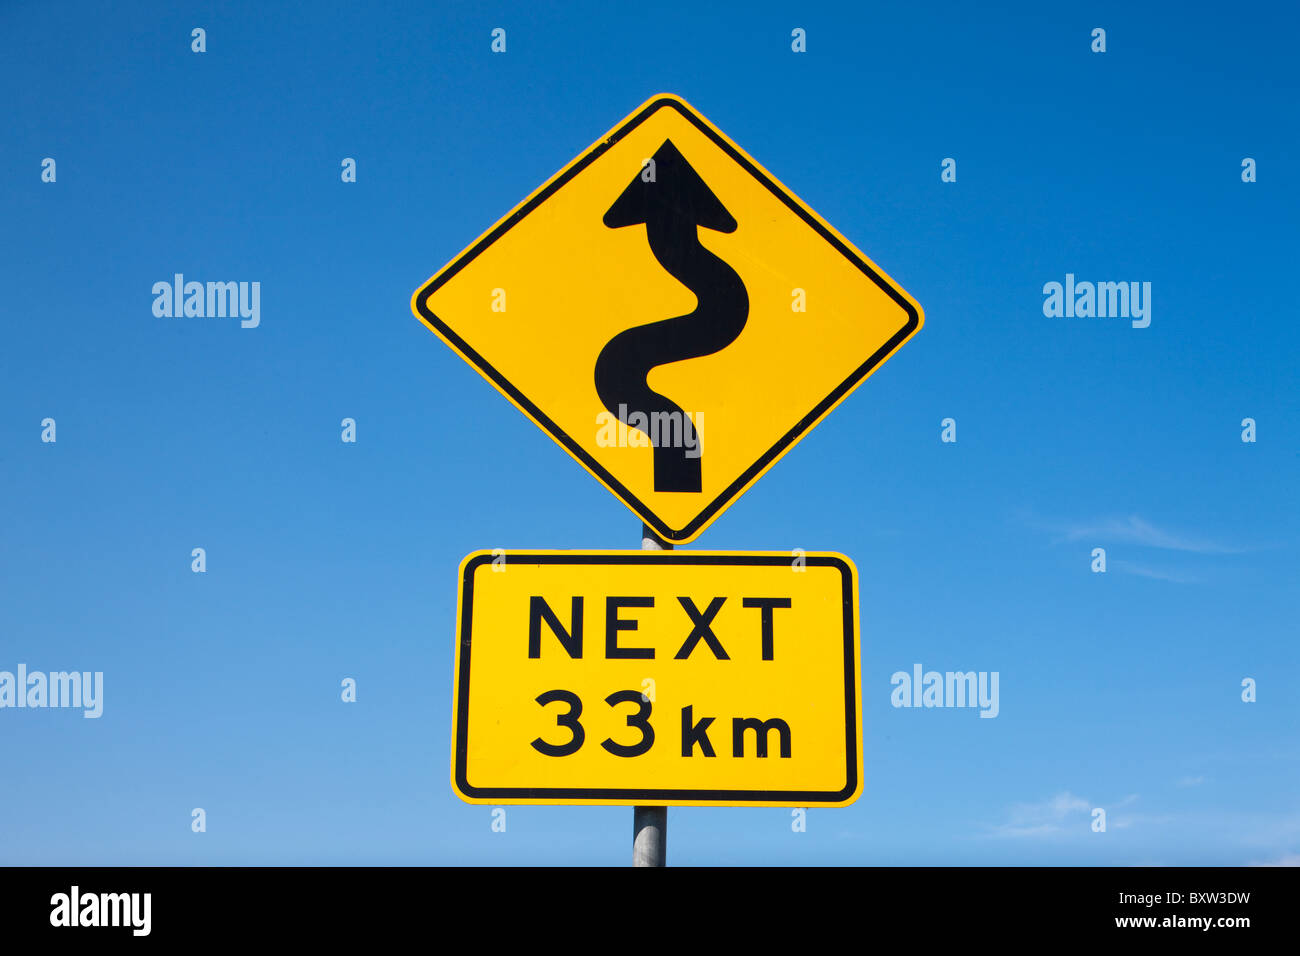 Australia, Victoria, Port Campbell, Winding Road Next 33km warning sign along Great Ocean Road - Stock Image